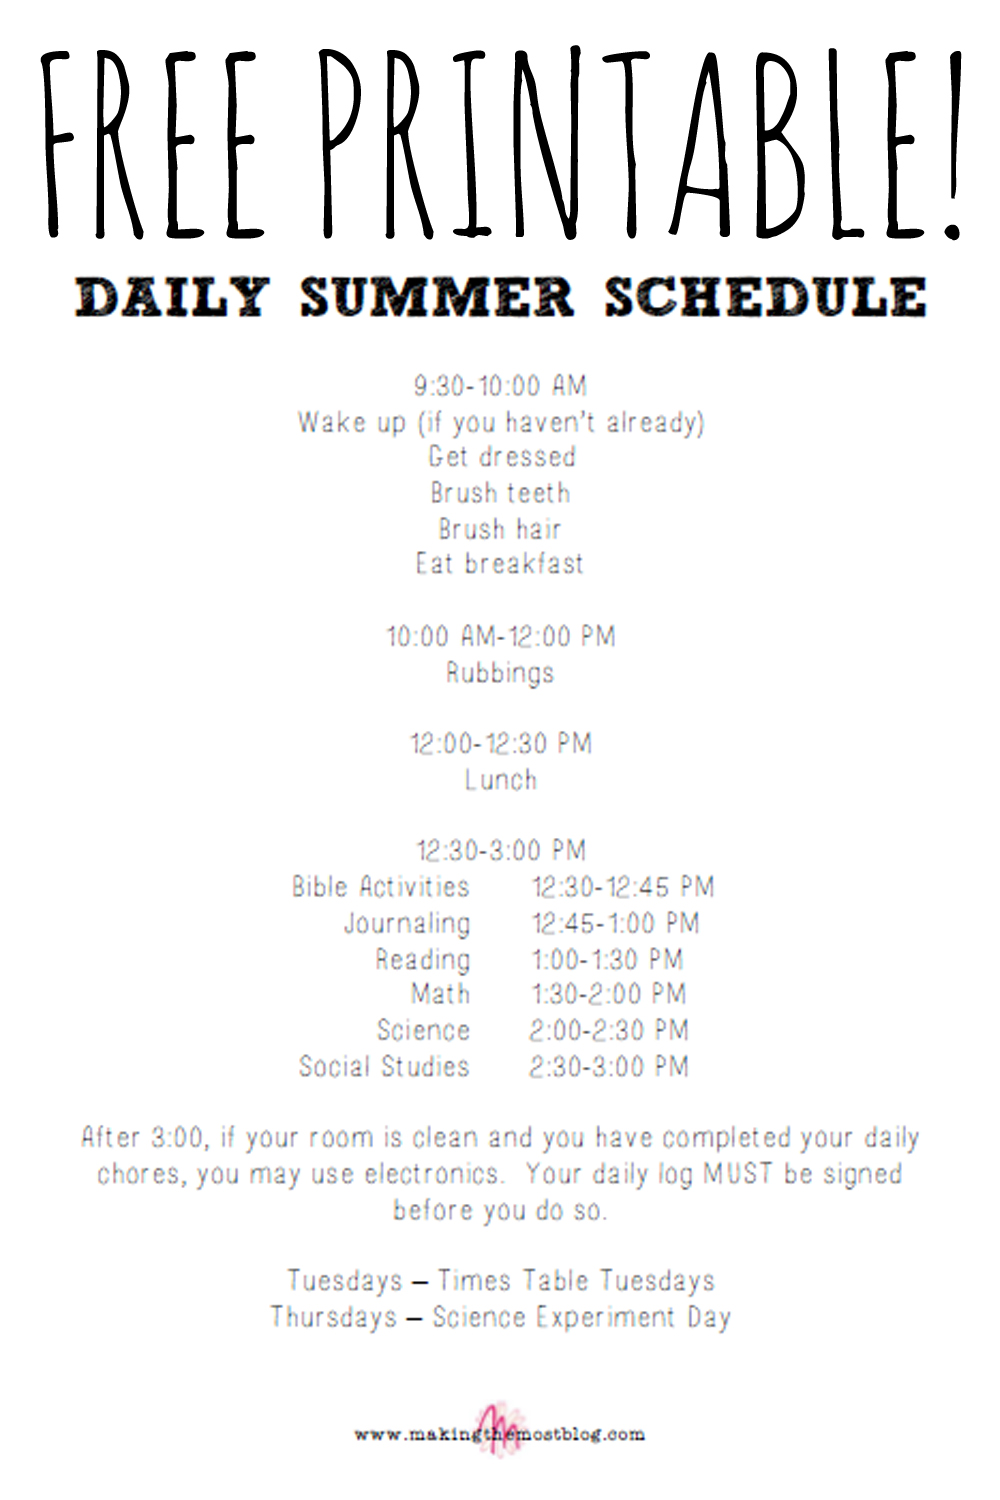 FREE! Printable Summer Schedule   Making the Most Blog